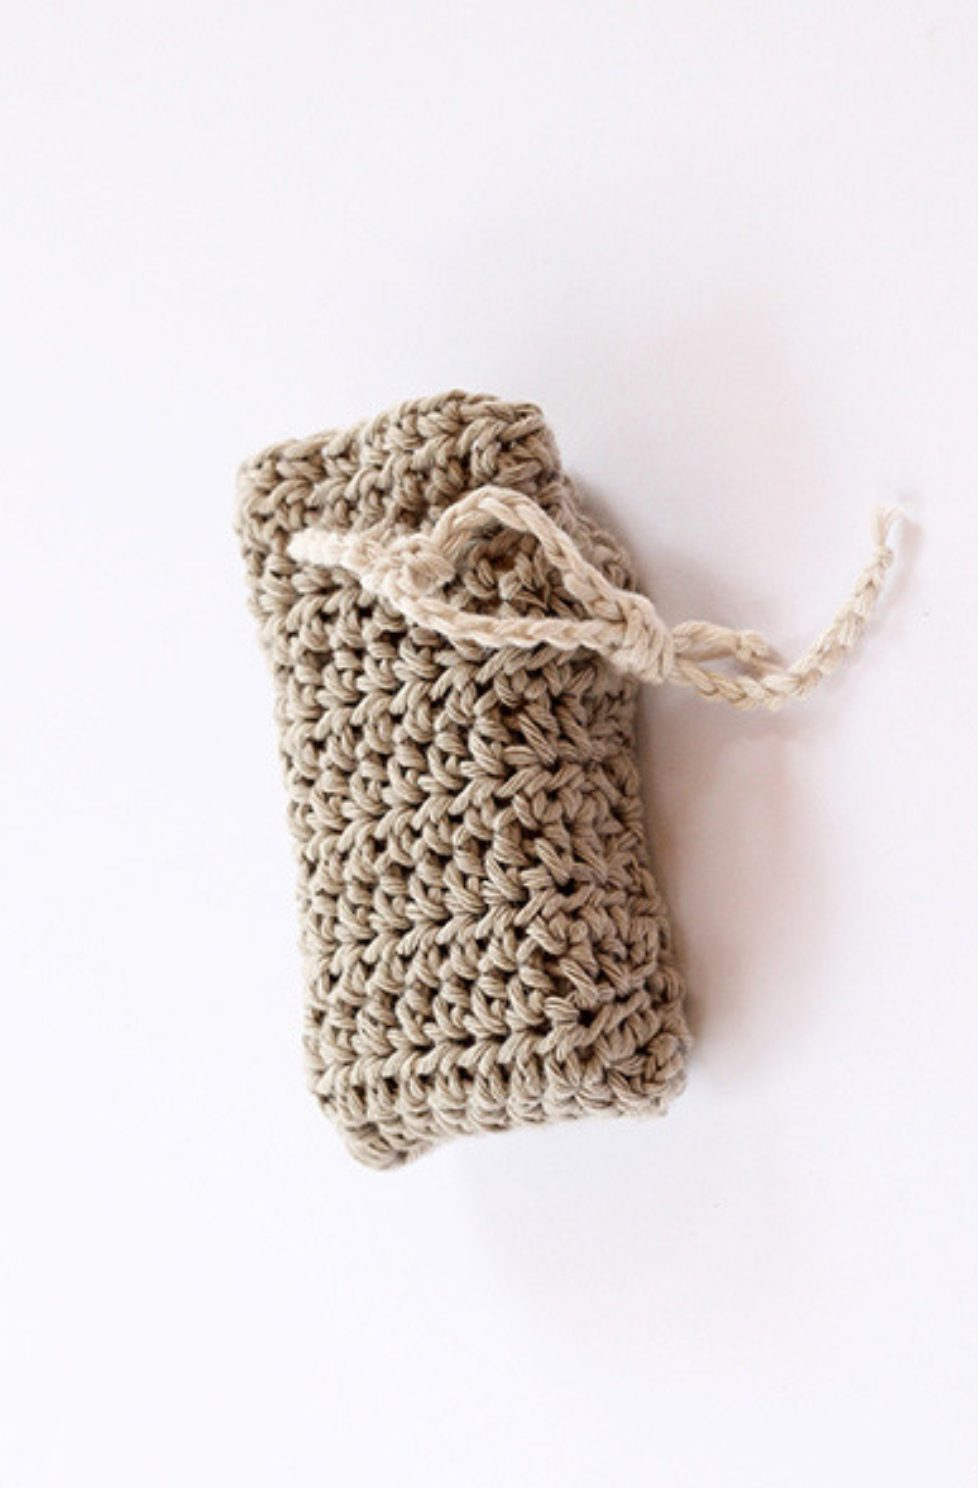 Crochet soap holder pattern